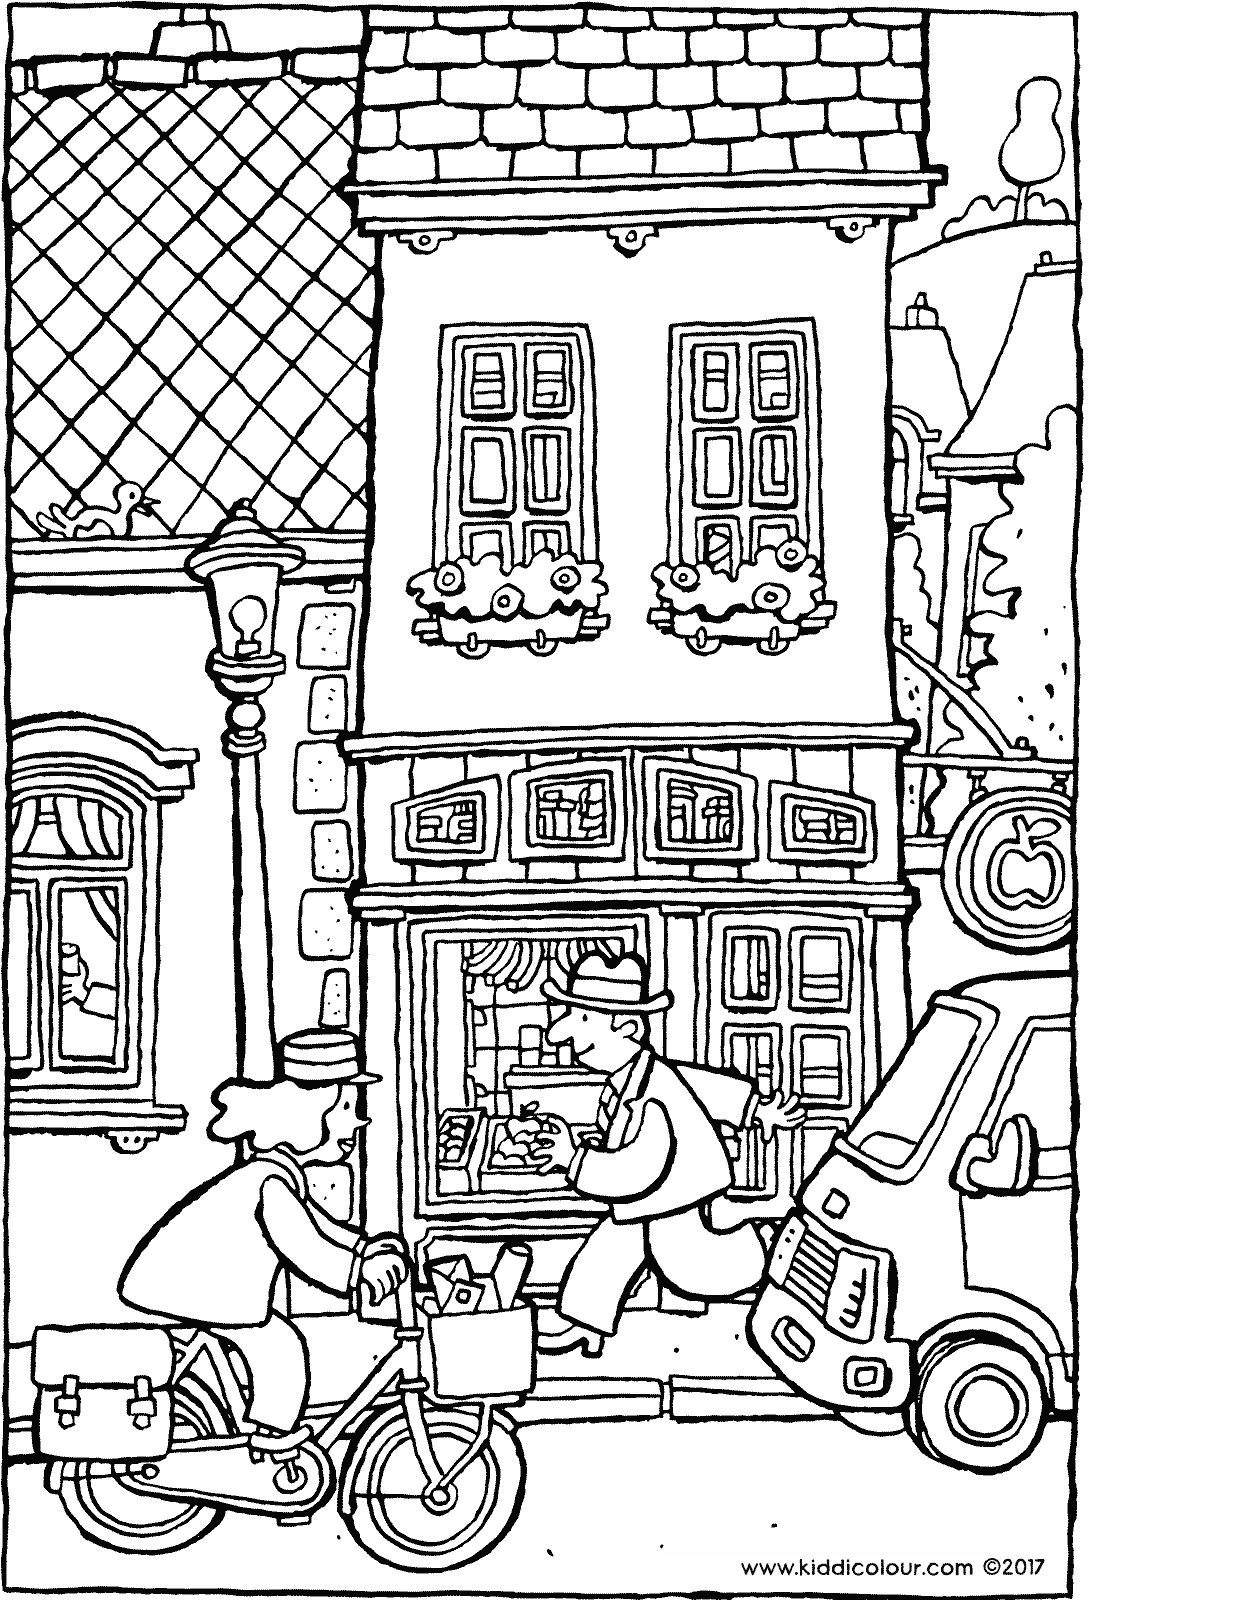 grocery store coloring pages - photo#35